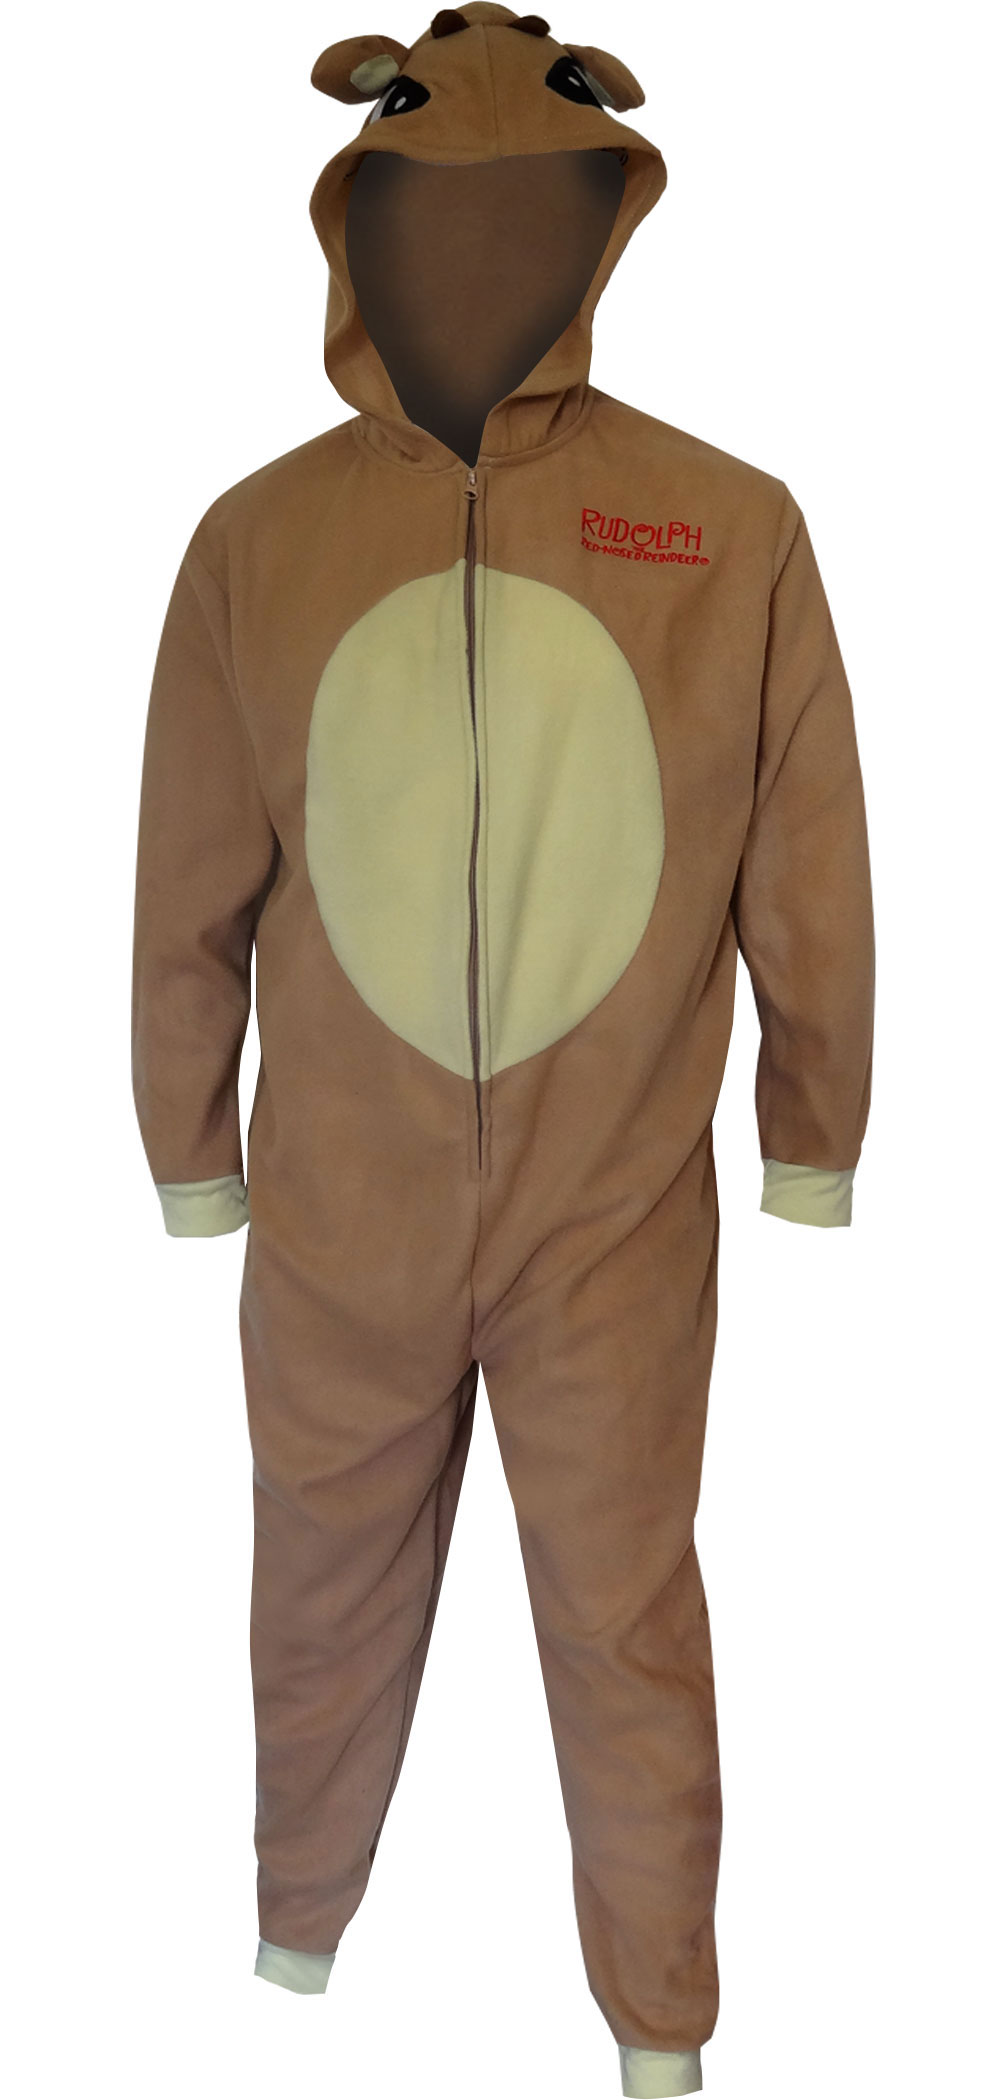 Dress Like Rudolph The Red Nosed Reindeer Pajamas for men